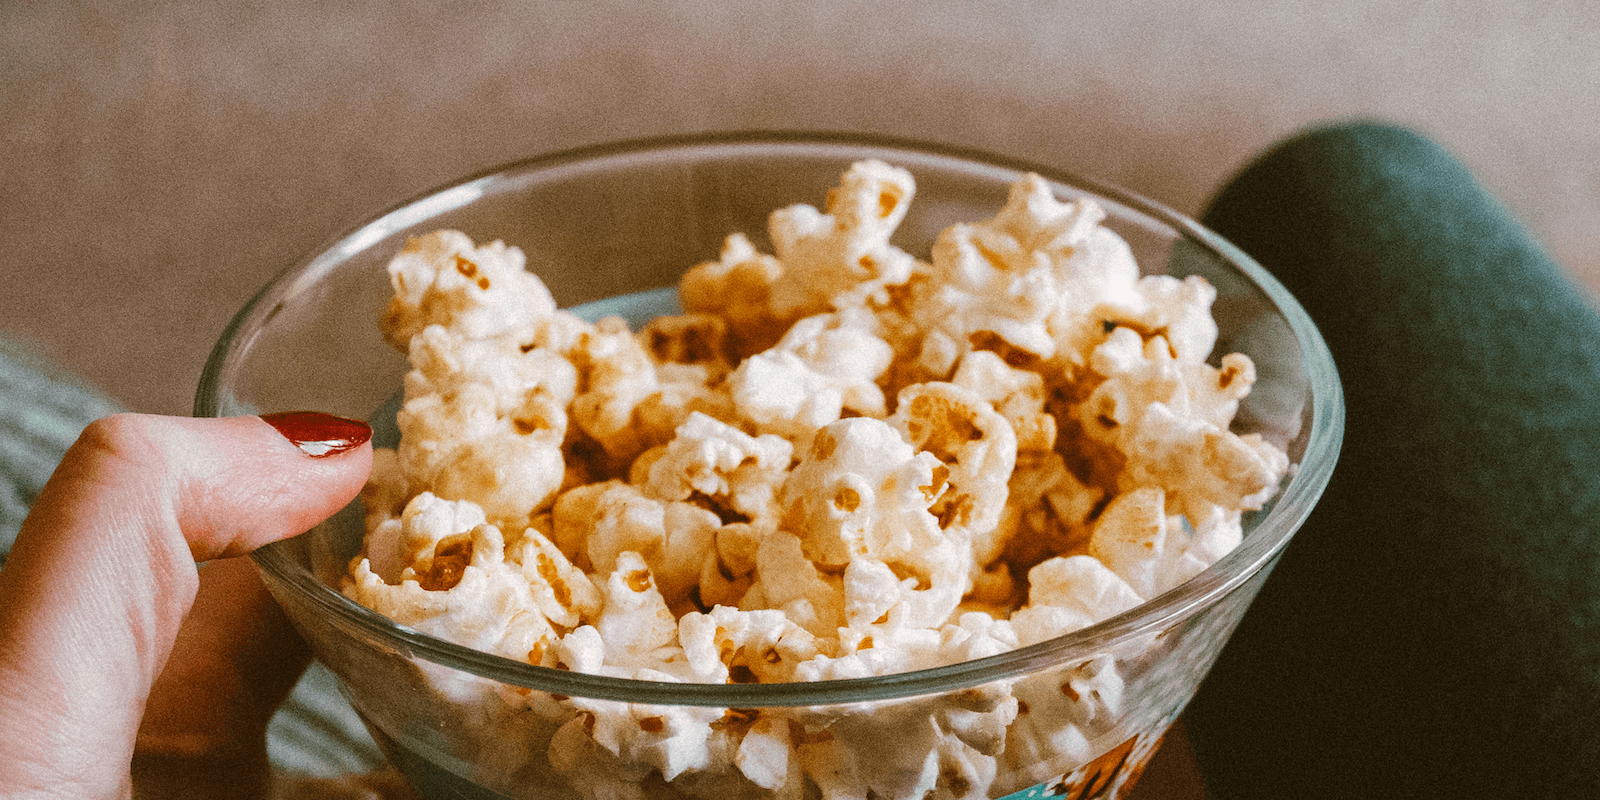 Healthy snacks to buy: salty and sweet popcorn